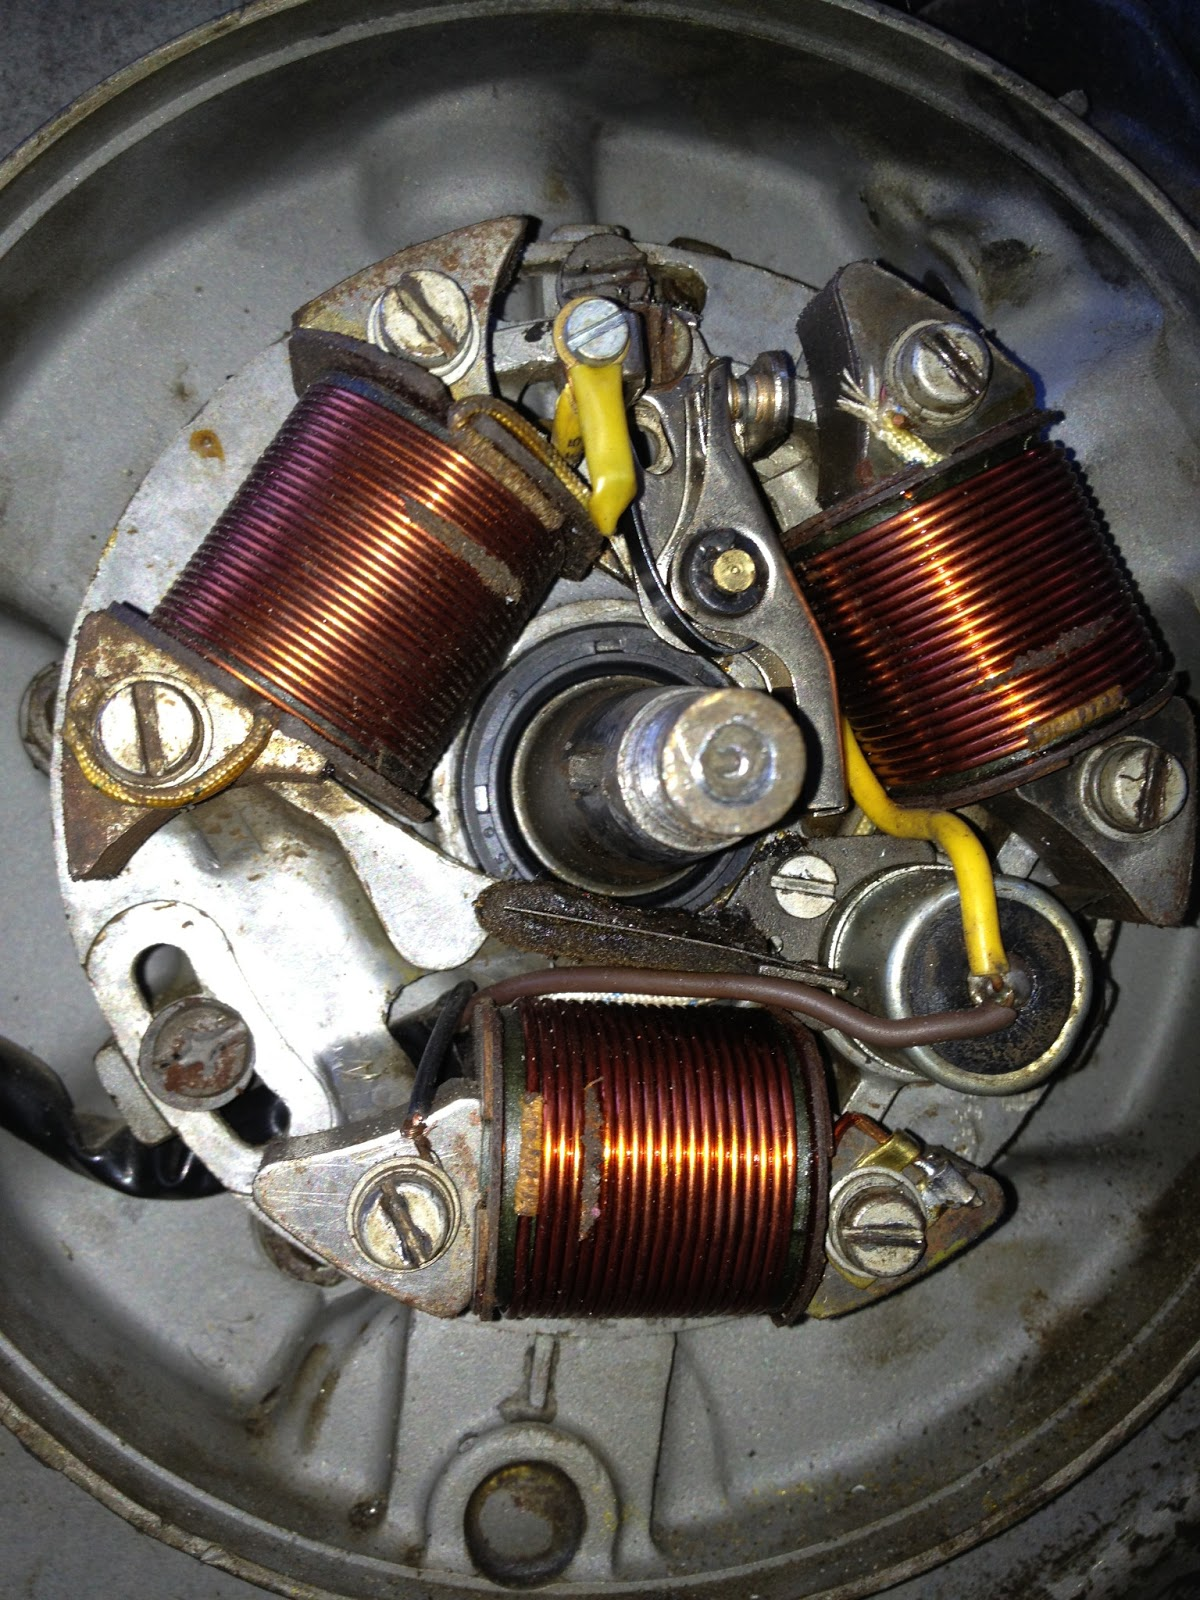 1967 Vespa Sprint 150 Vlbit Maintenance Record Vna Wiring Diagram Hey Now This Is Interesting Http Scootrallycom Phpbb3 Viewtopicphpf2t2072